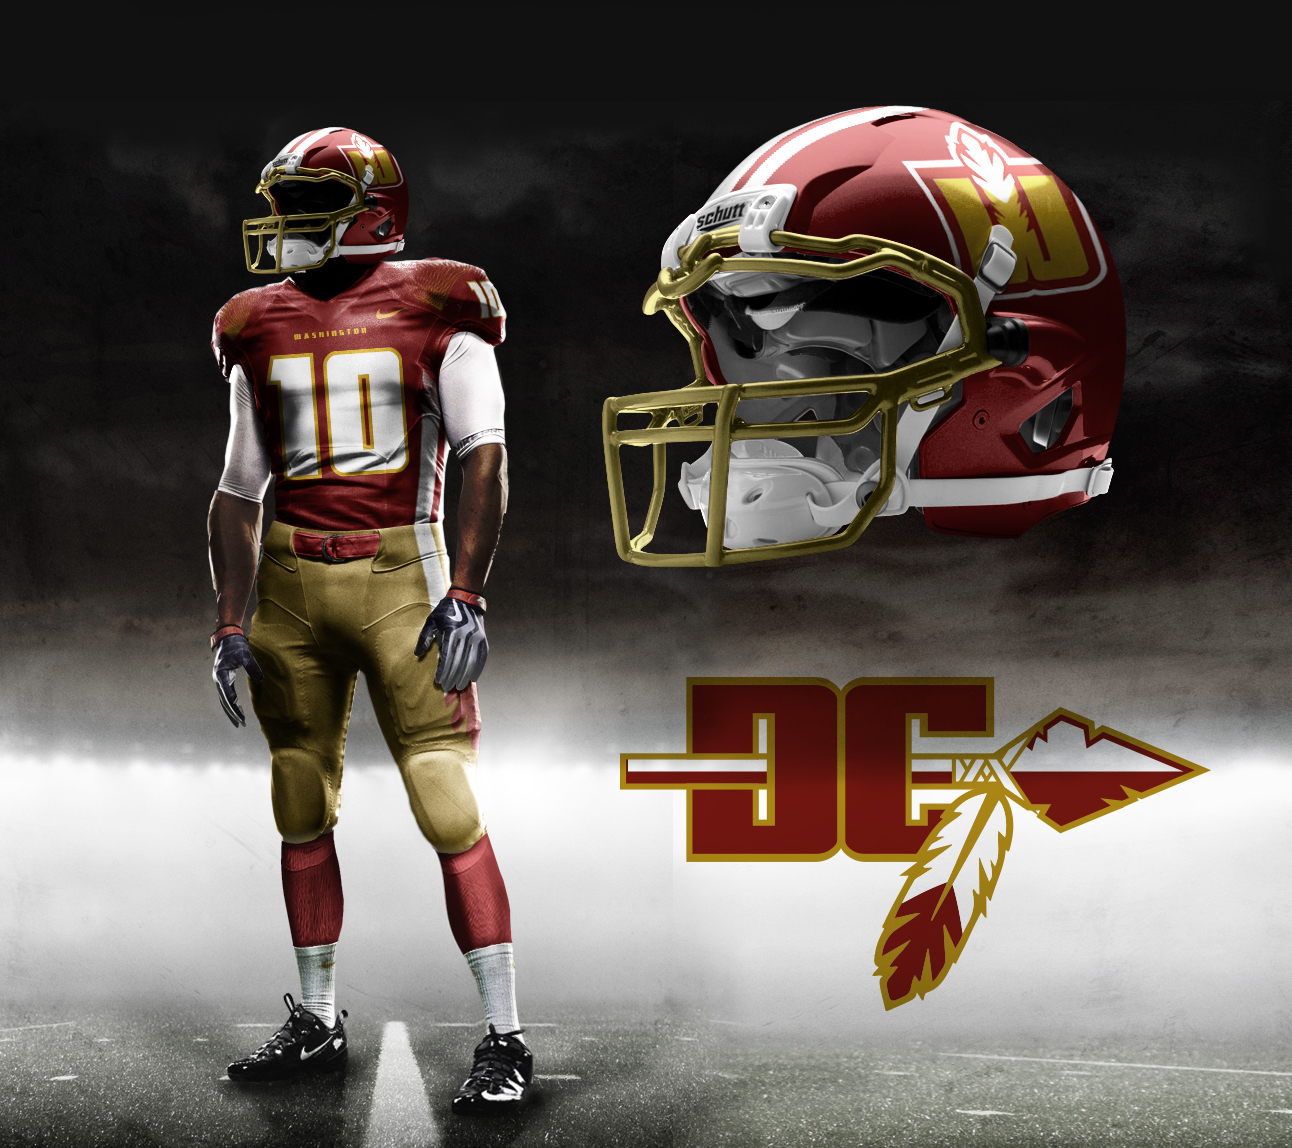 cc9ae04f9 Washington Warriors (Redskins Redesign) on Behance